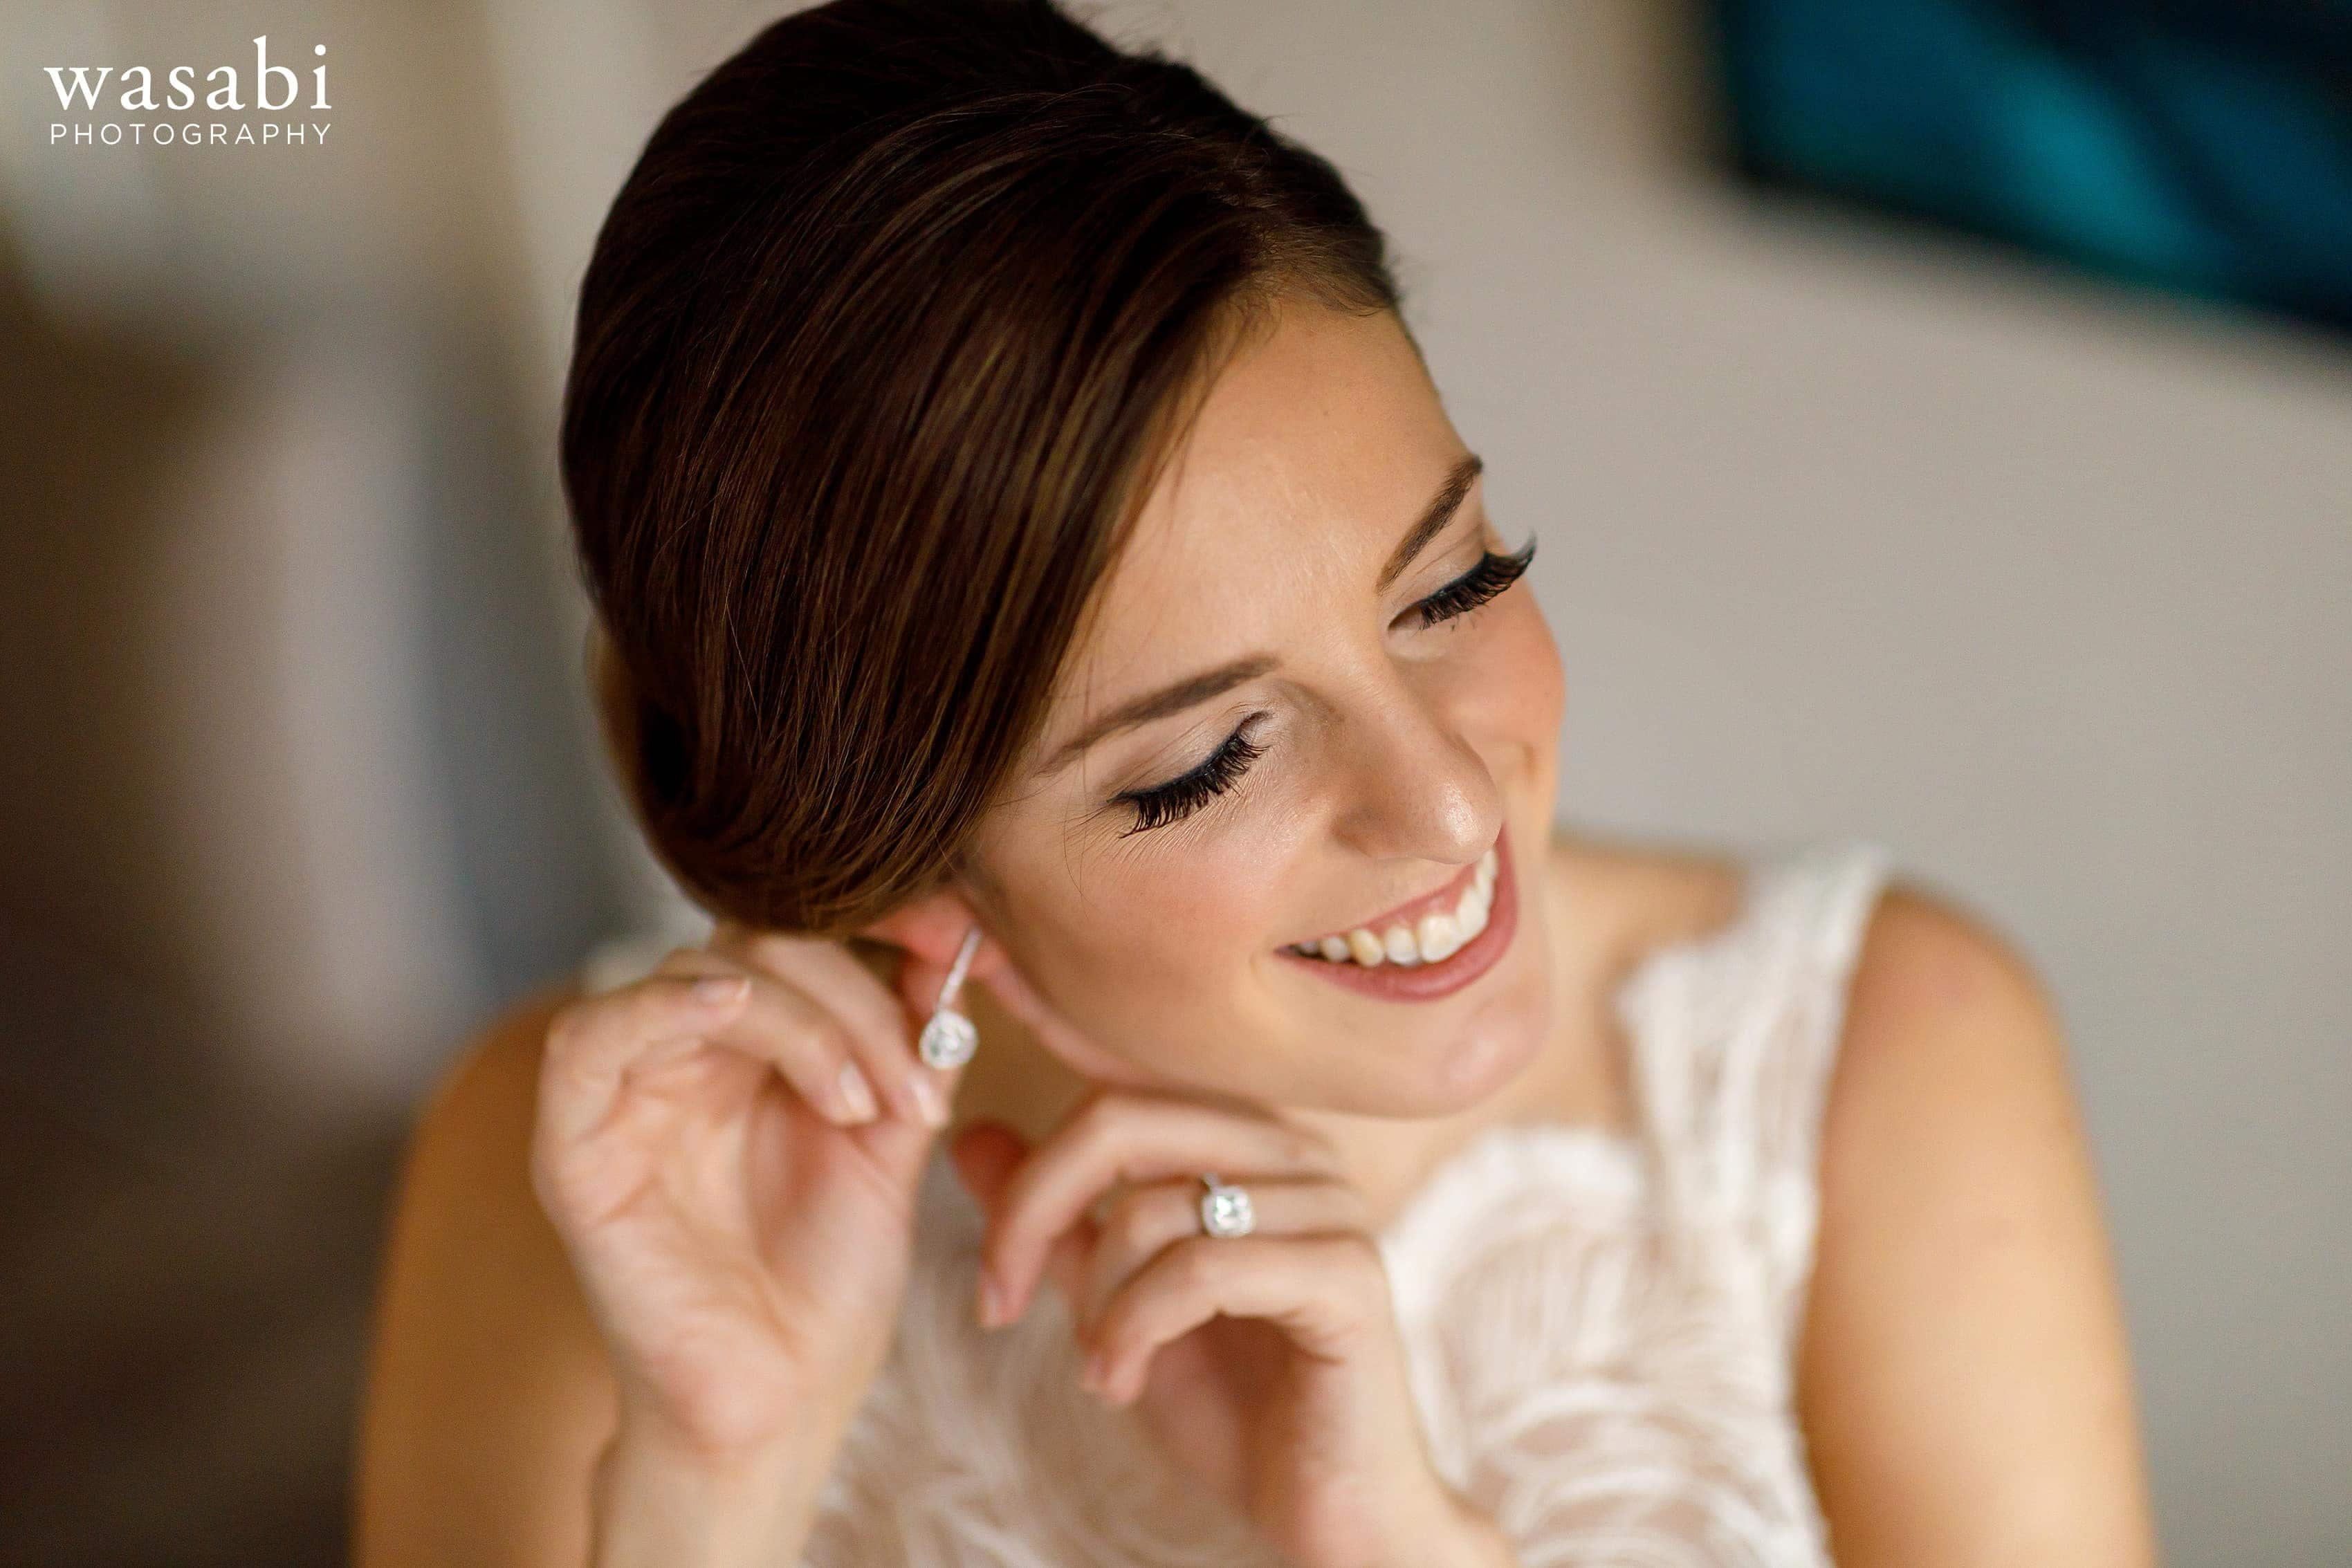 bride puts on earrings in the presidential suite while getting ready for wedding at InterContinental Chicago Magnificent Mile Hotel